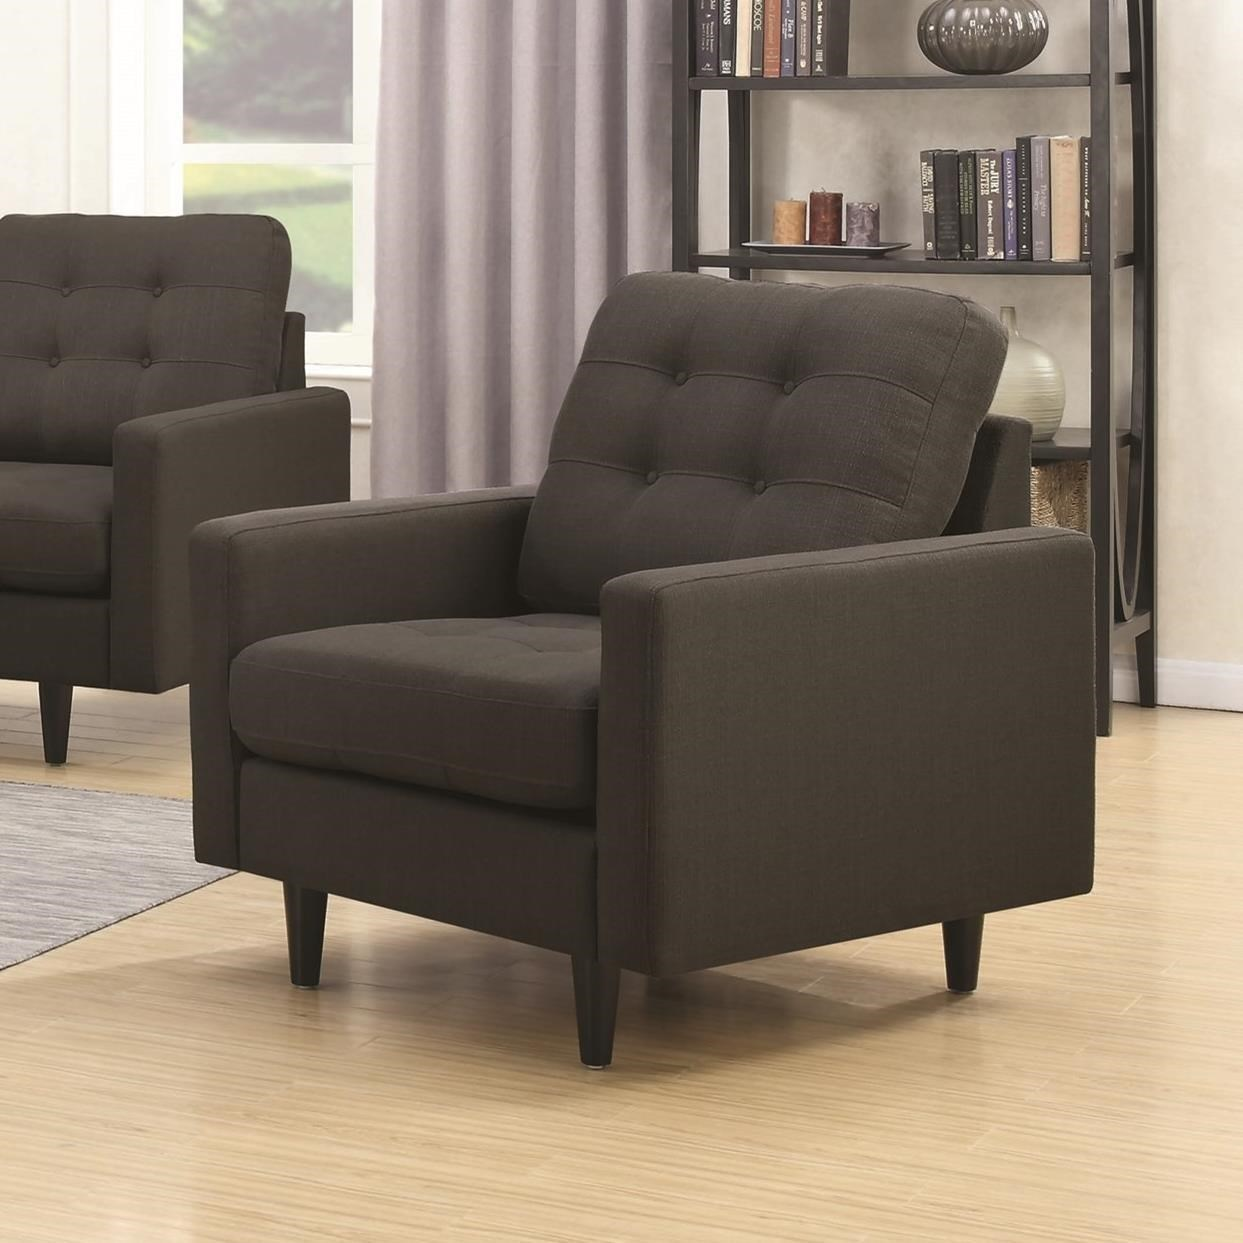 Merveilleux ... Furniture Upholstered Chairs Coaster Kesson Chair. Coaster KessonChair;  Coaster KessonChair